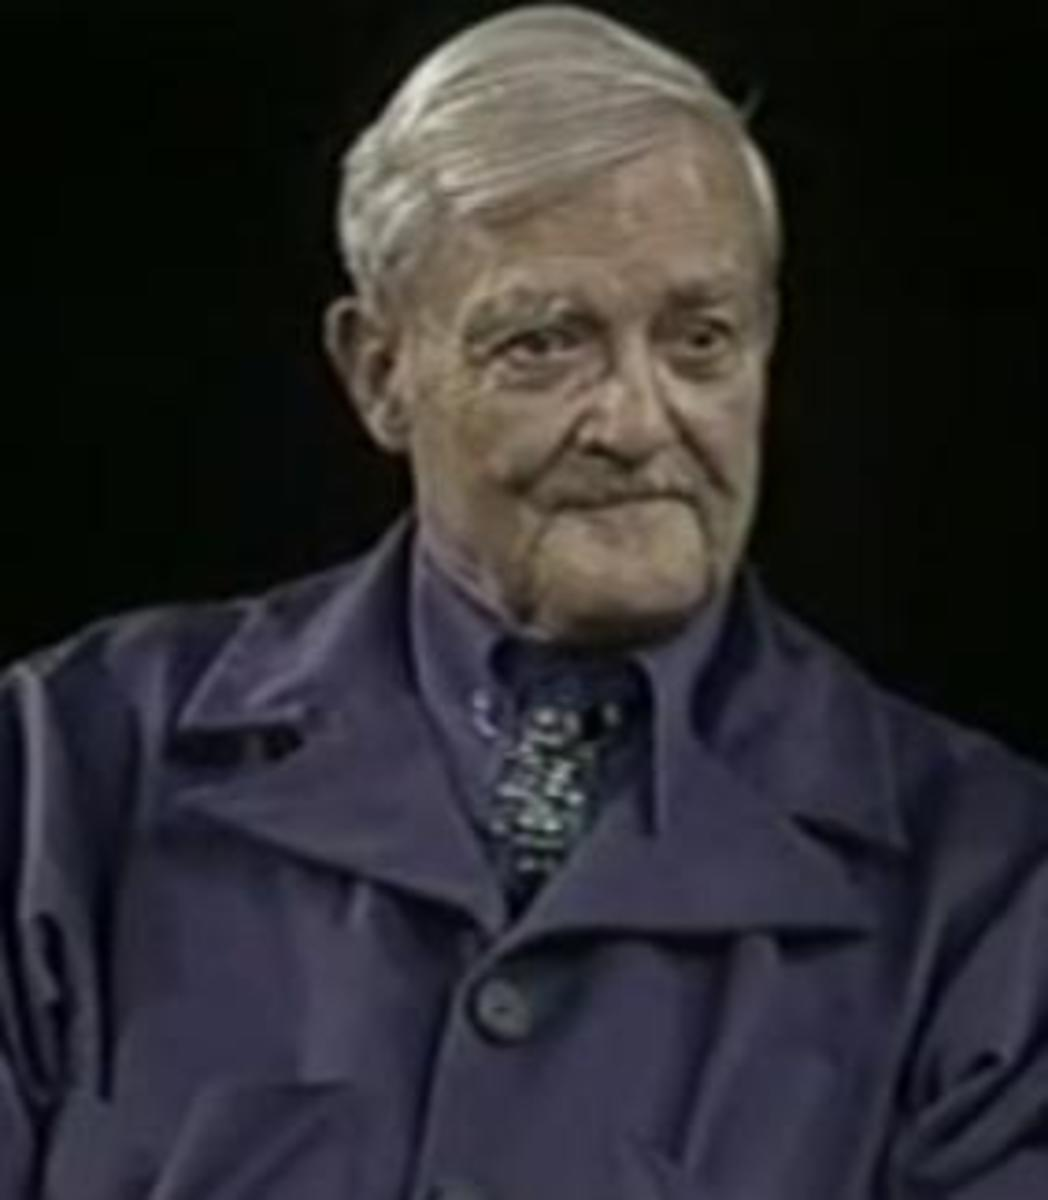 Milton H. Erickson, famous American hypnotist and father of indirect suggestion